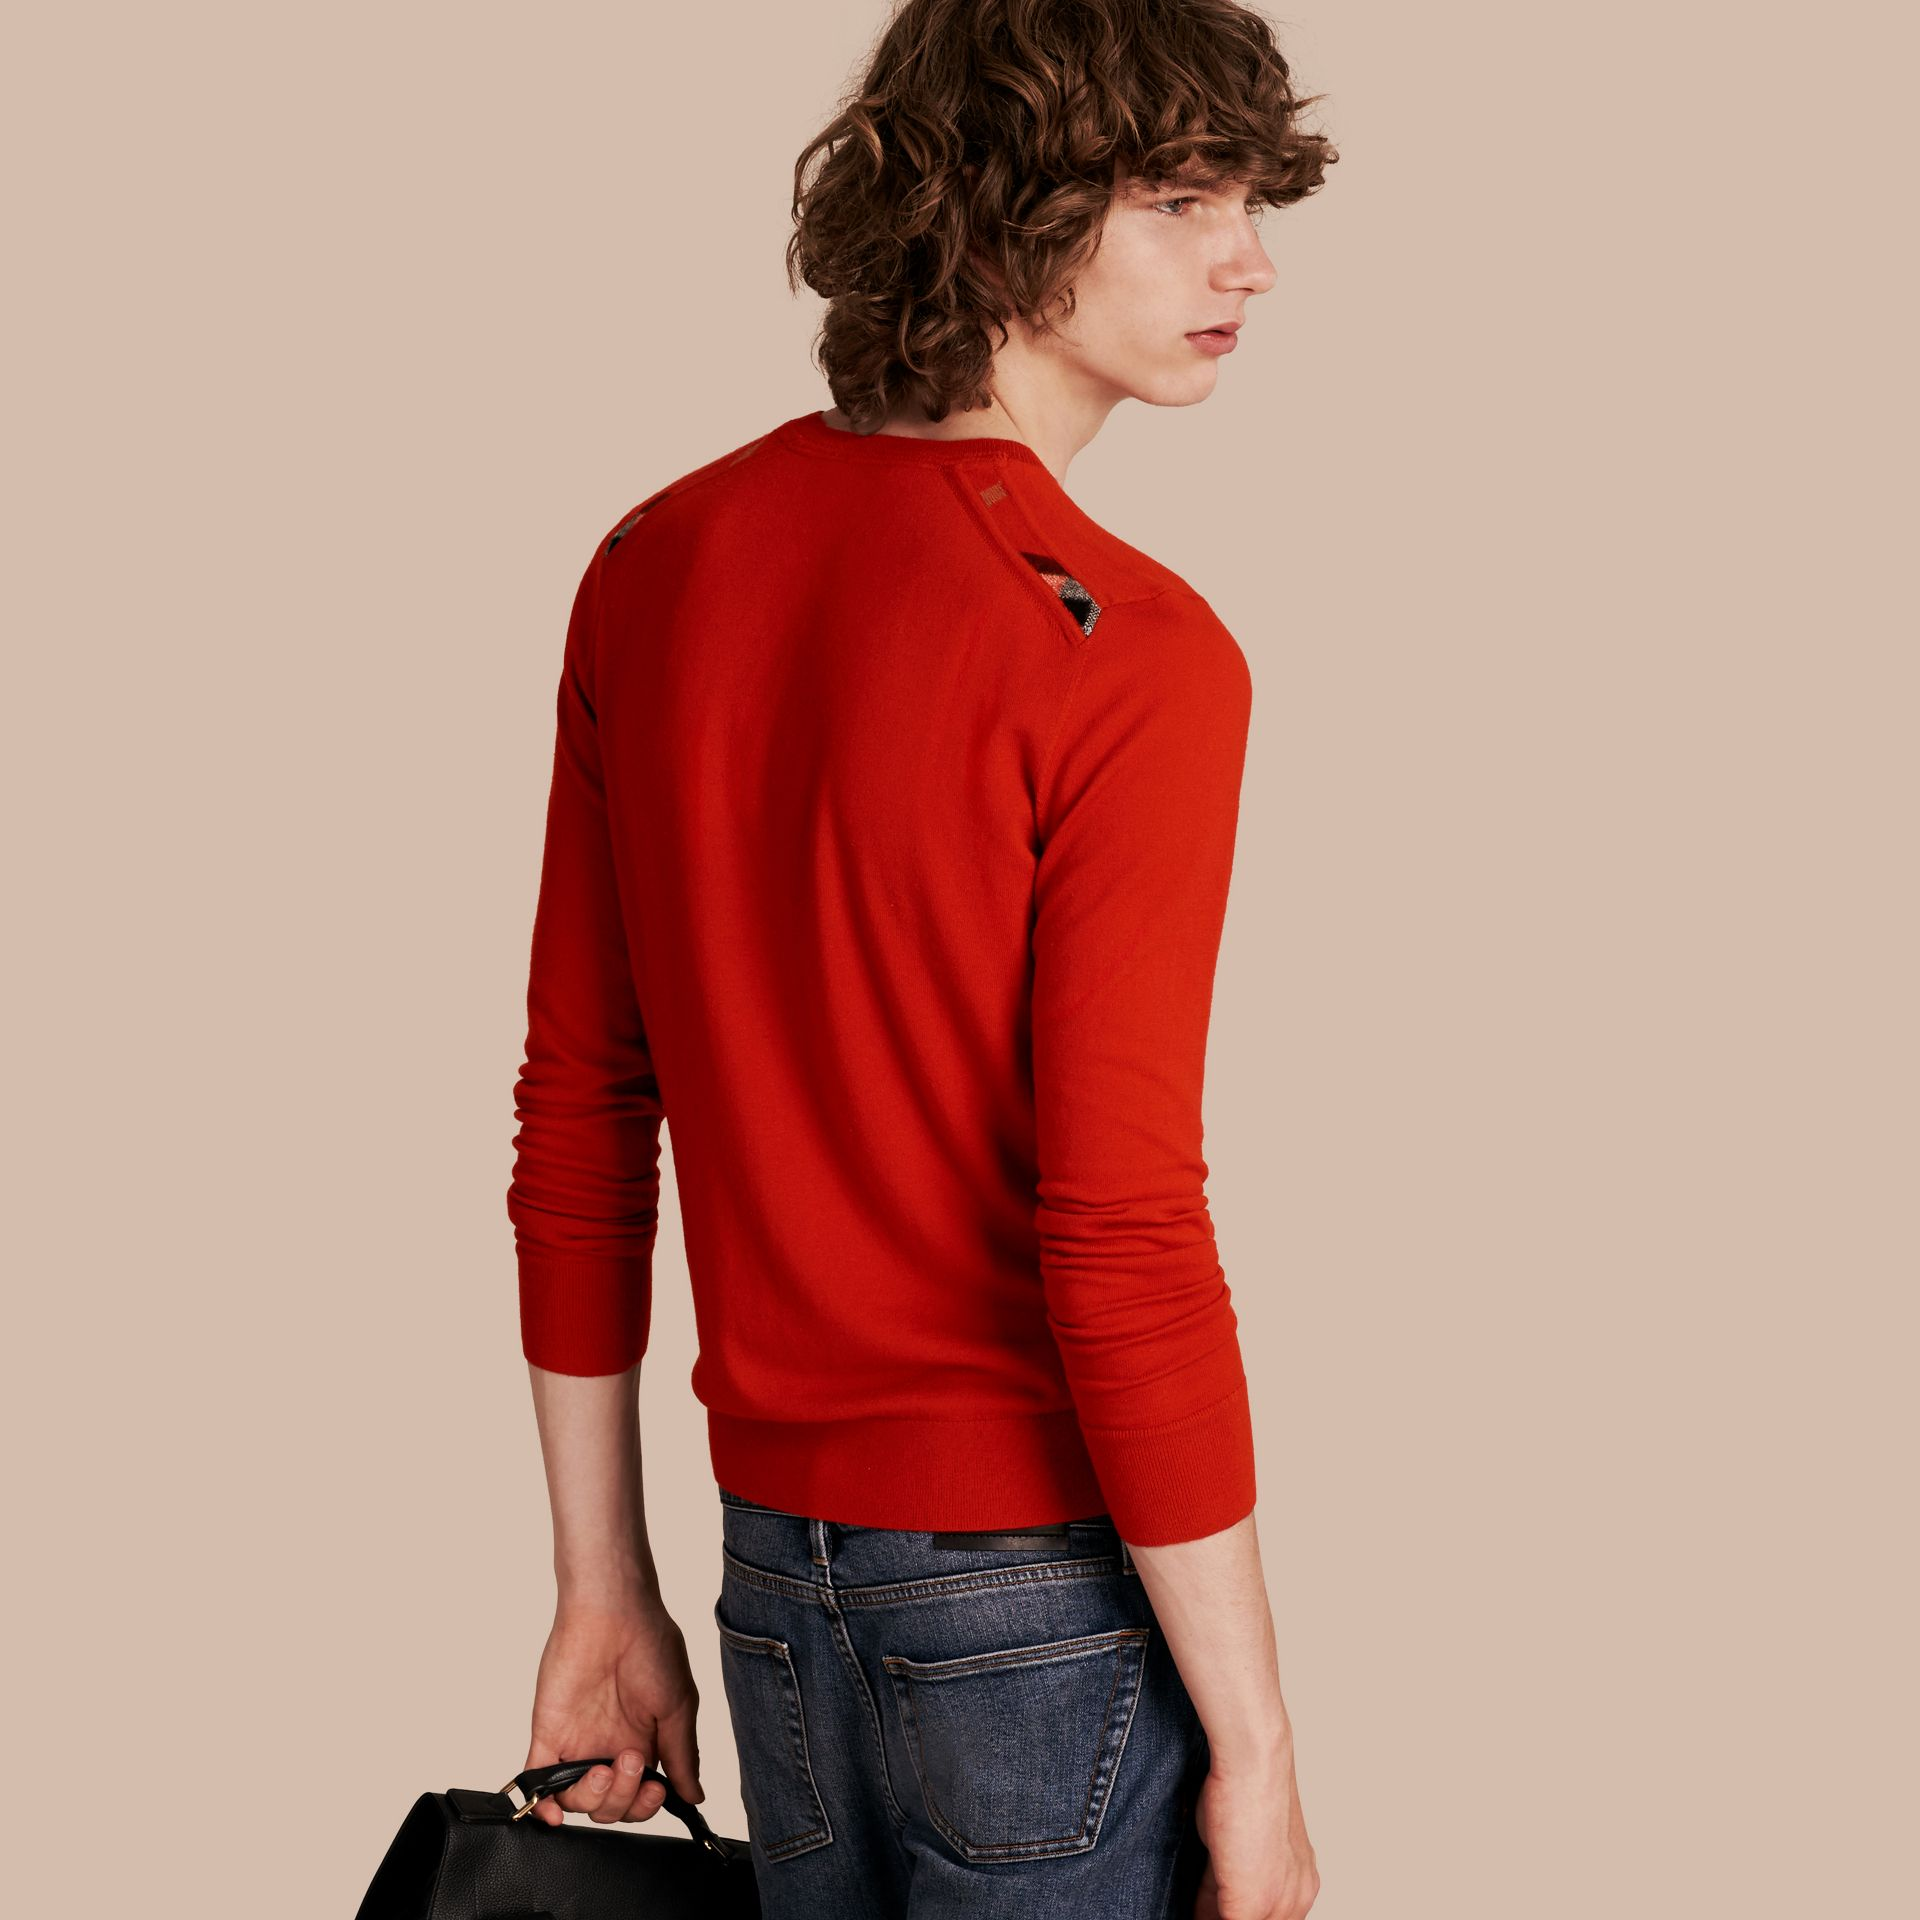 Parade red Lightweight Crew Neck Cashmere Sweater with Check Trim Parade Red - gallery image 1